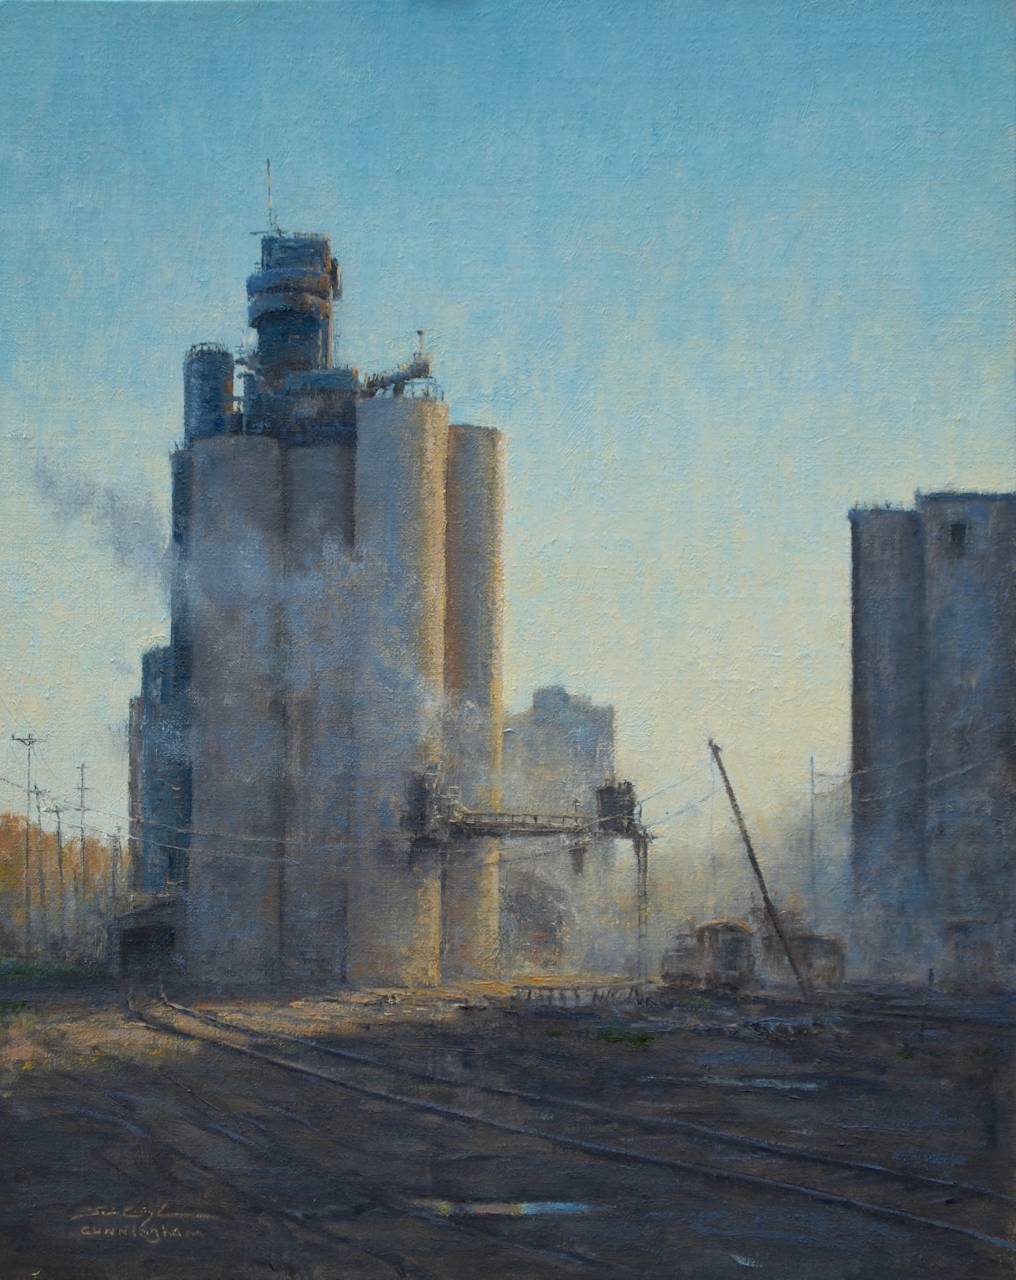 SOLD - Dust and Steam